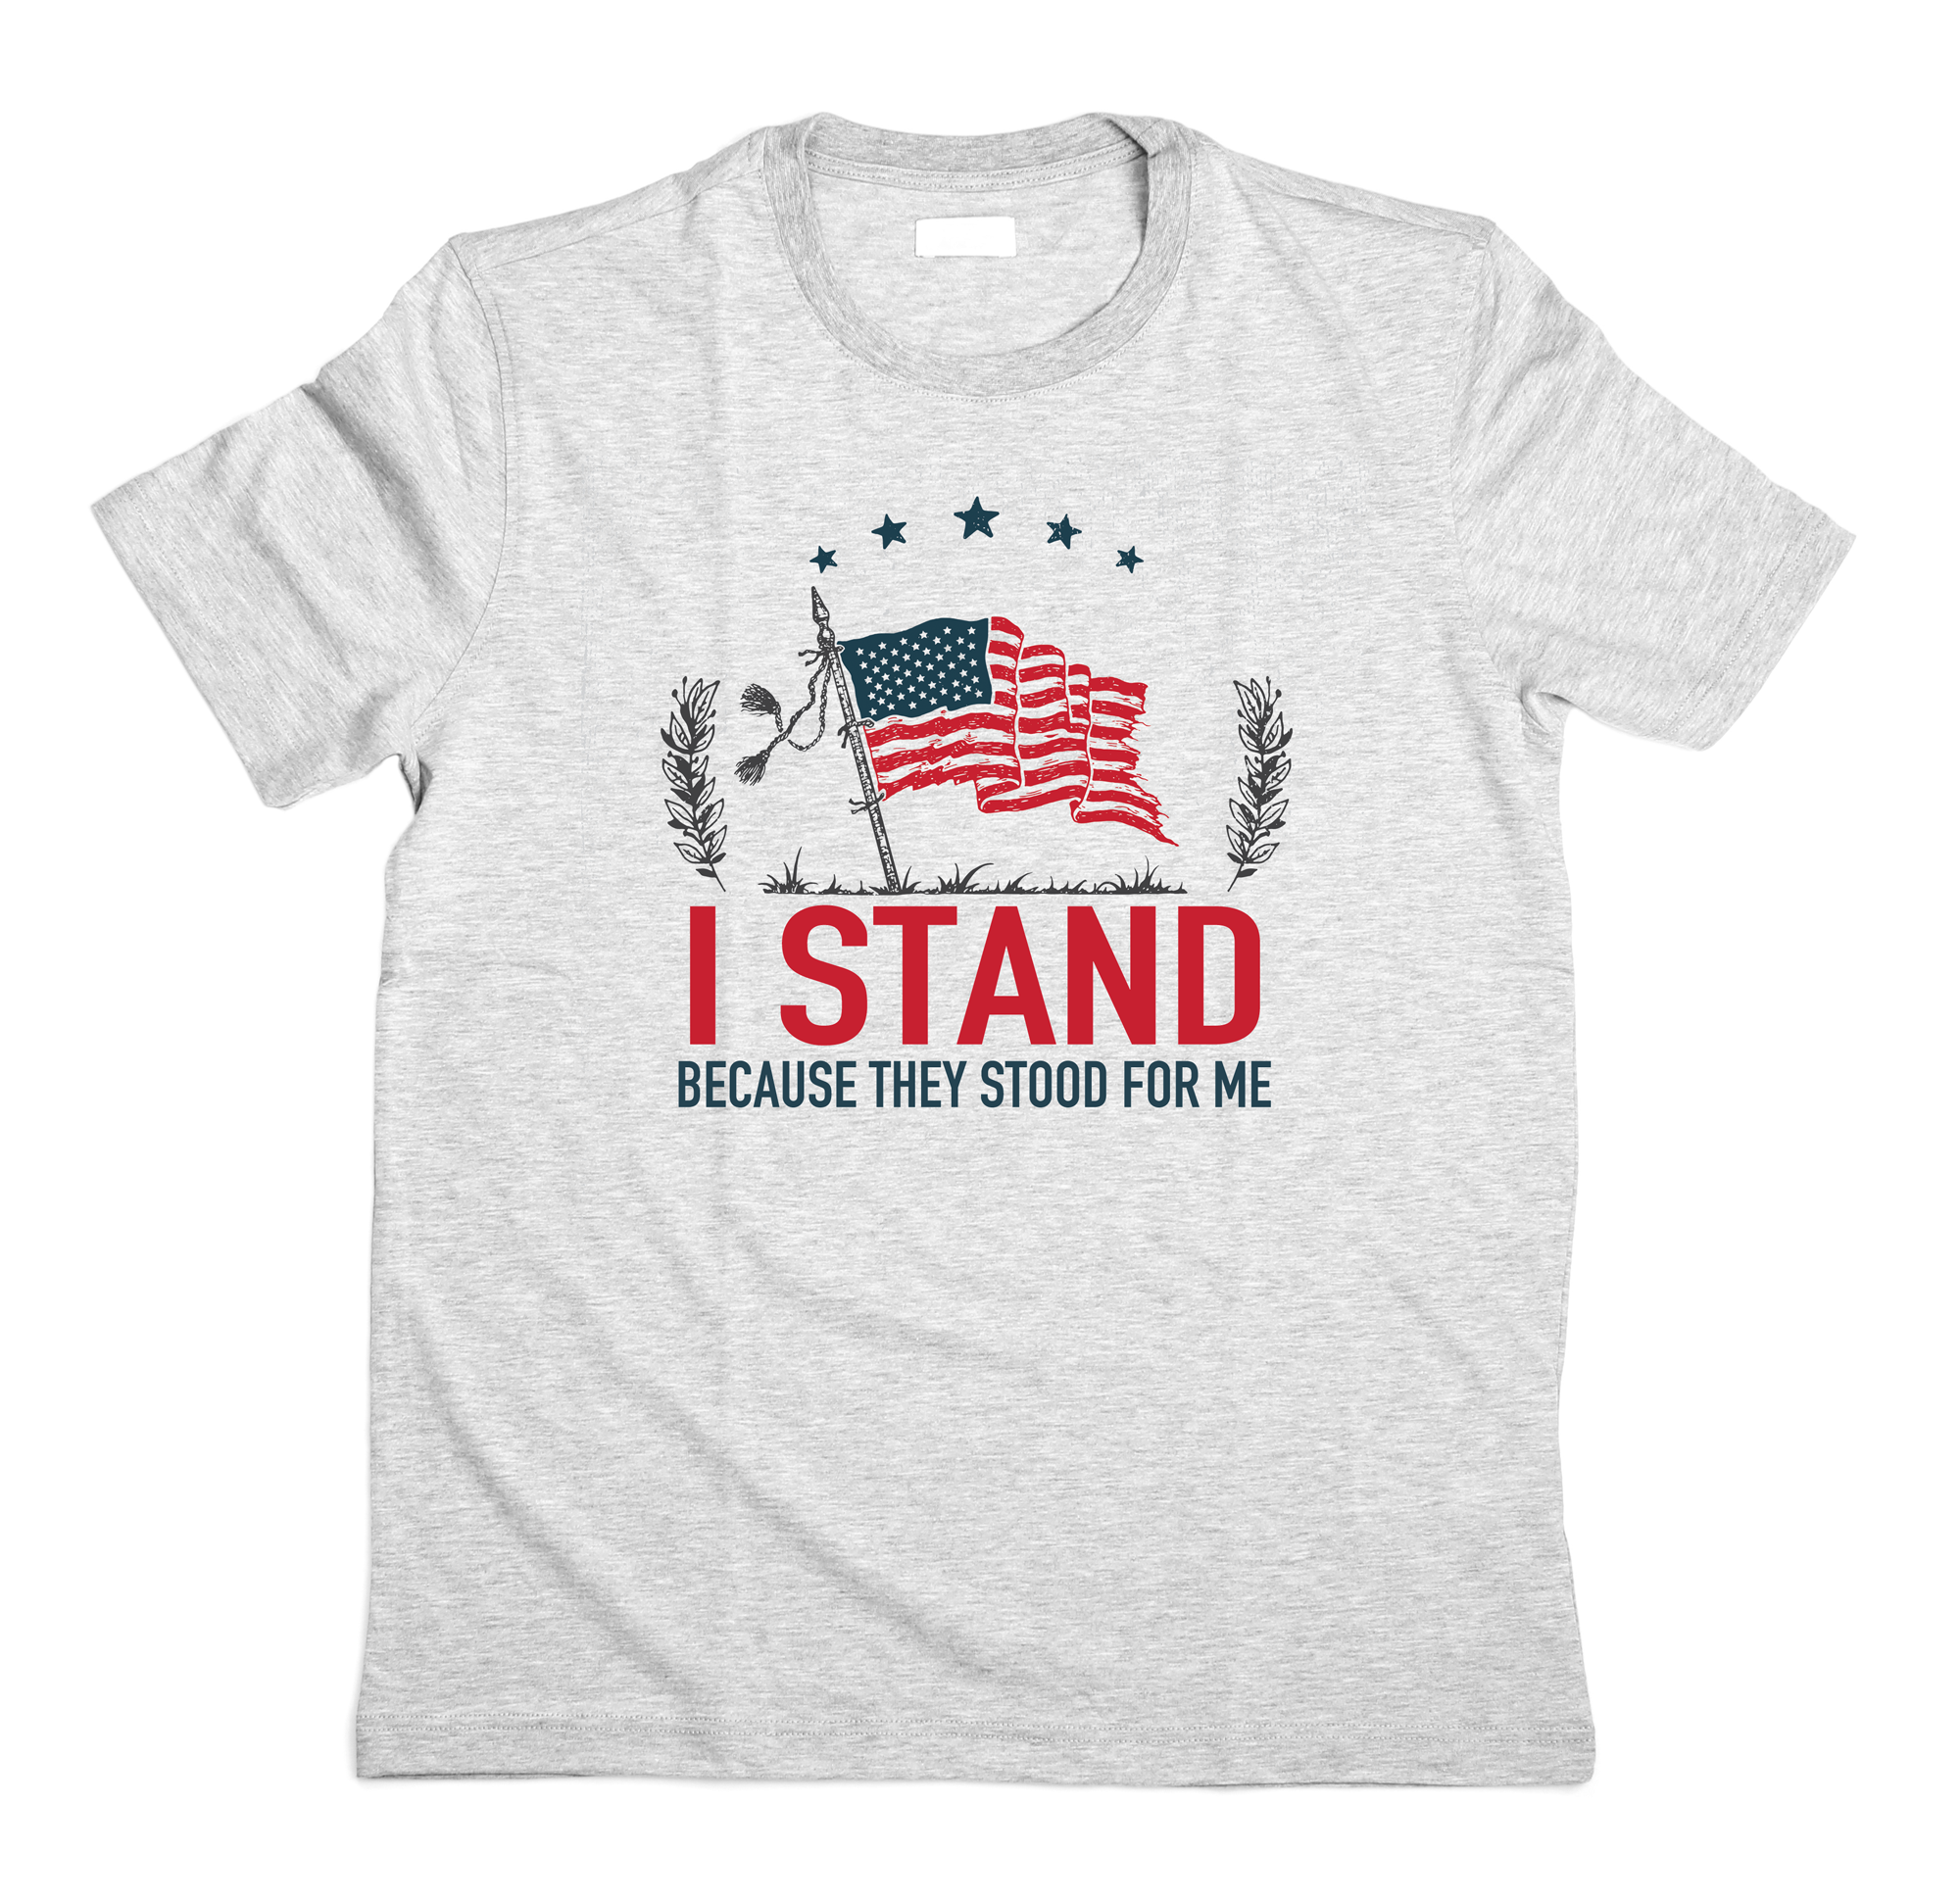 I Stand Patriotic T-Shirt (MADE IN THE USA) - Keep and Bear Store a979d62c3cdb